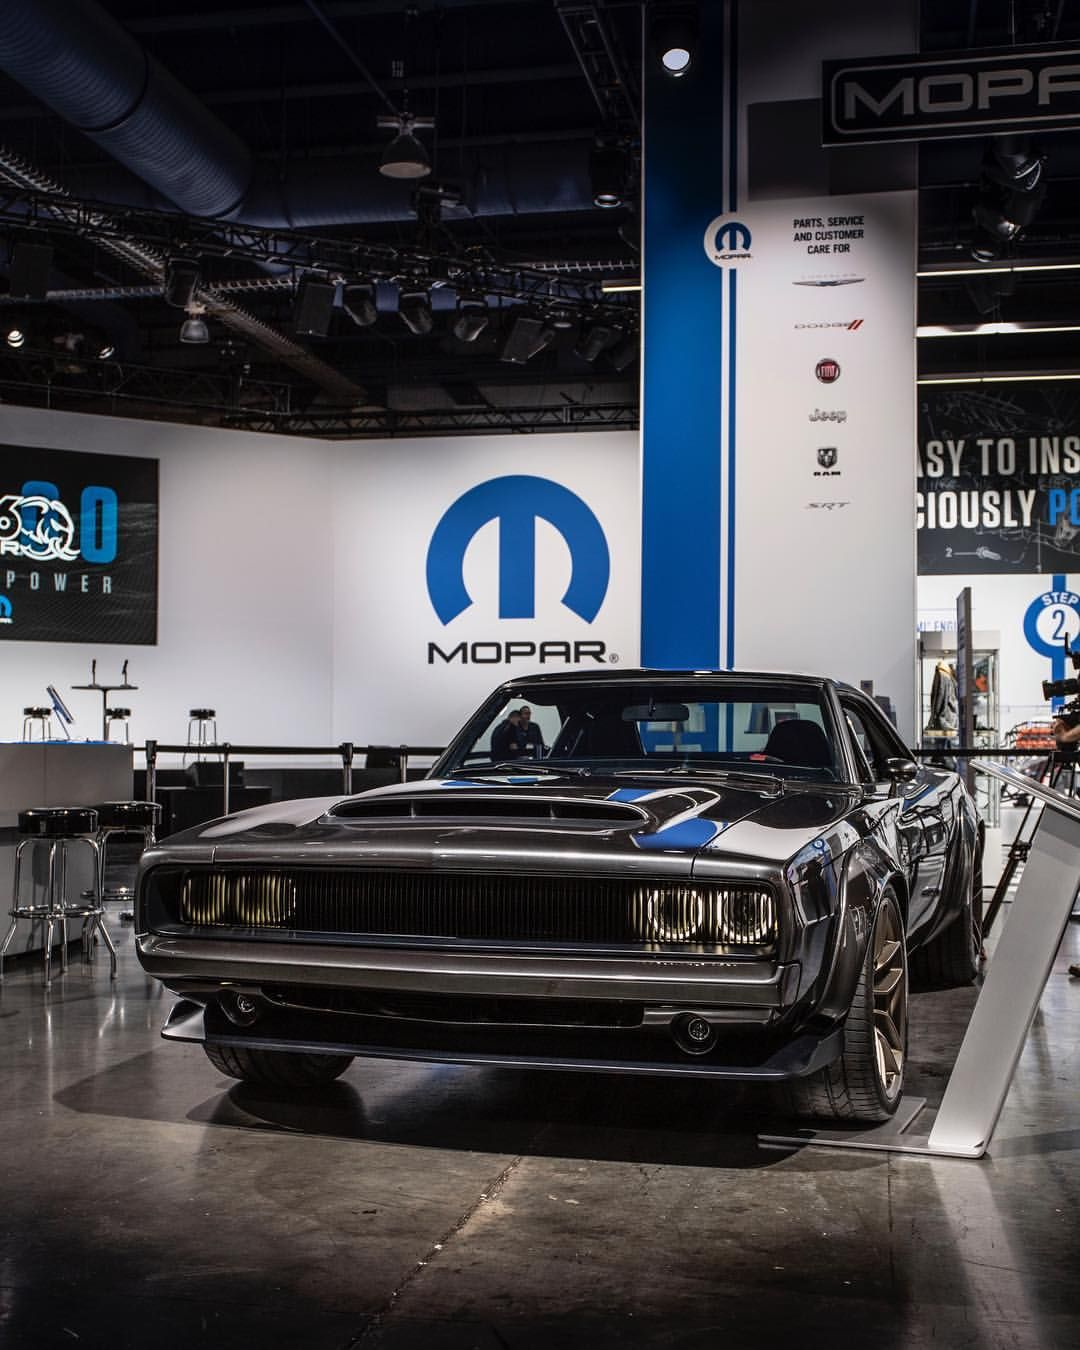 This One Of A Kind 1968 Dodgeofficial Super Charger Concept Is